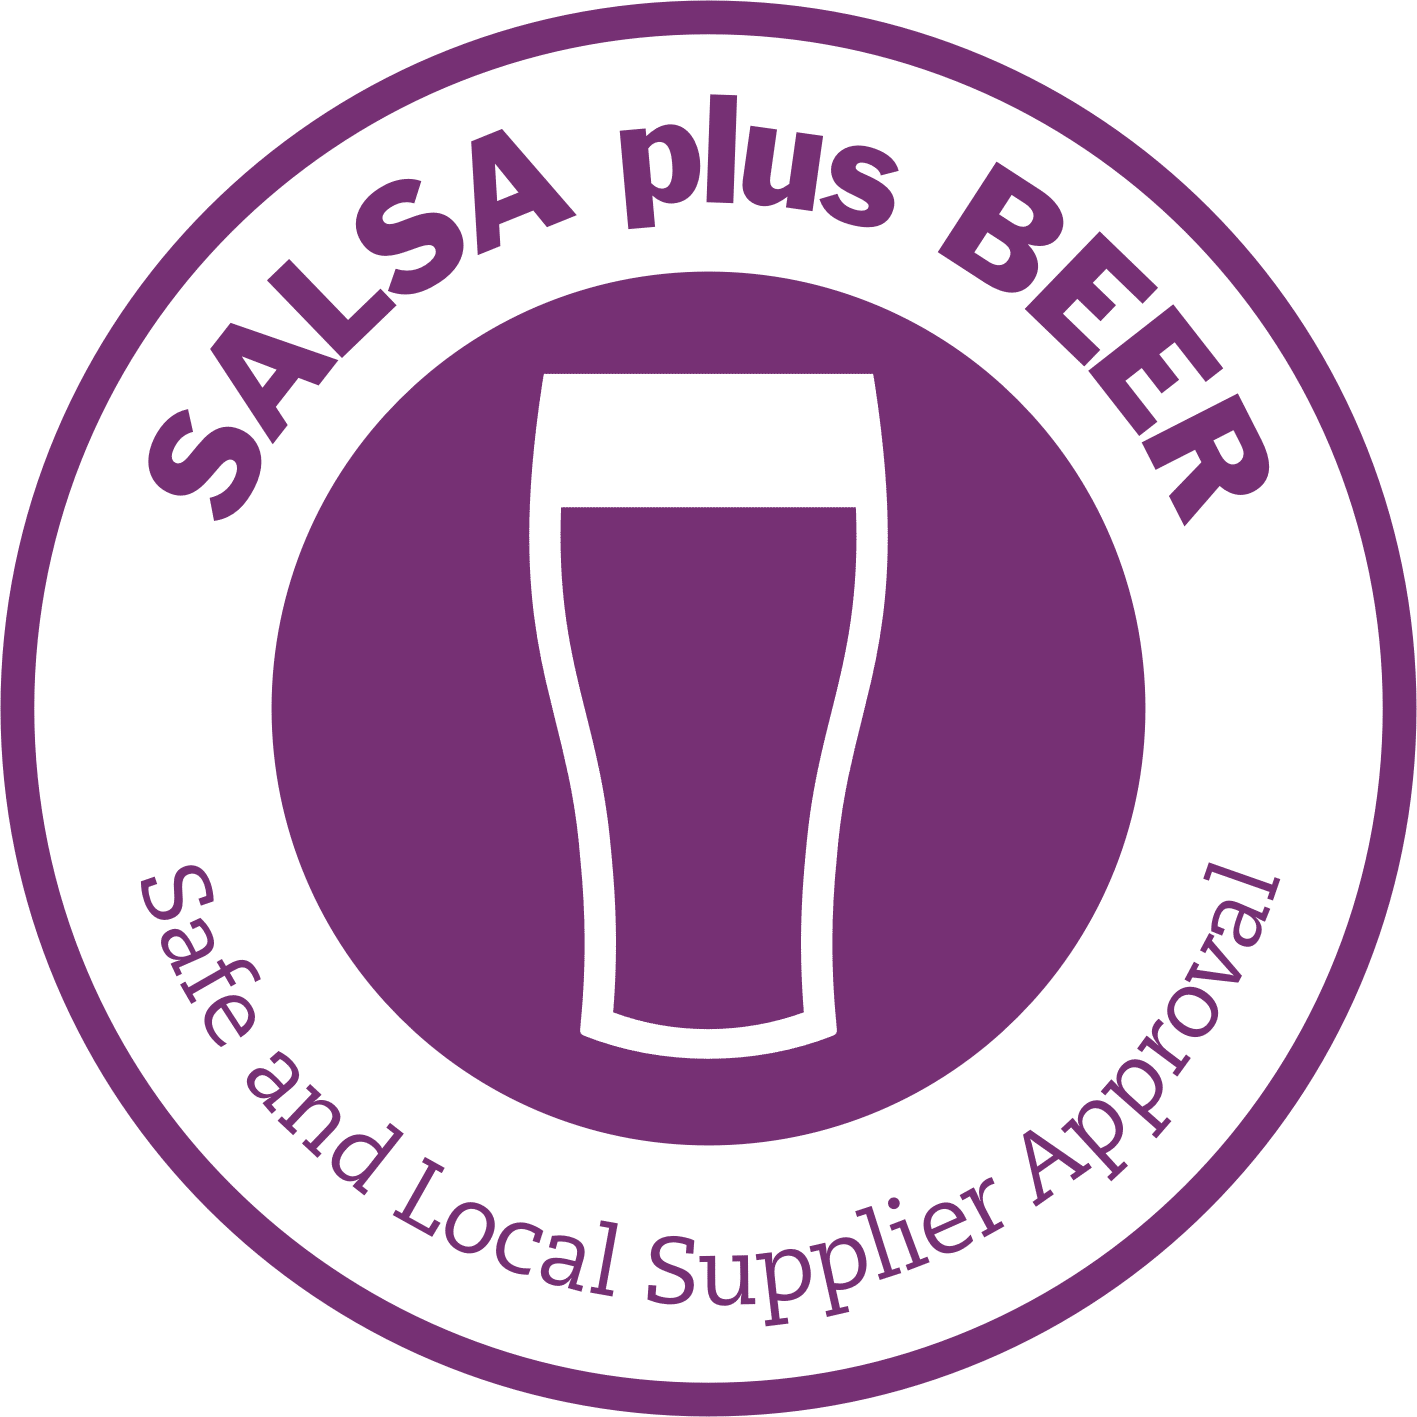 Salsa plus Beer safe and Local Supplier Approval logo